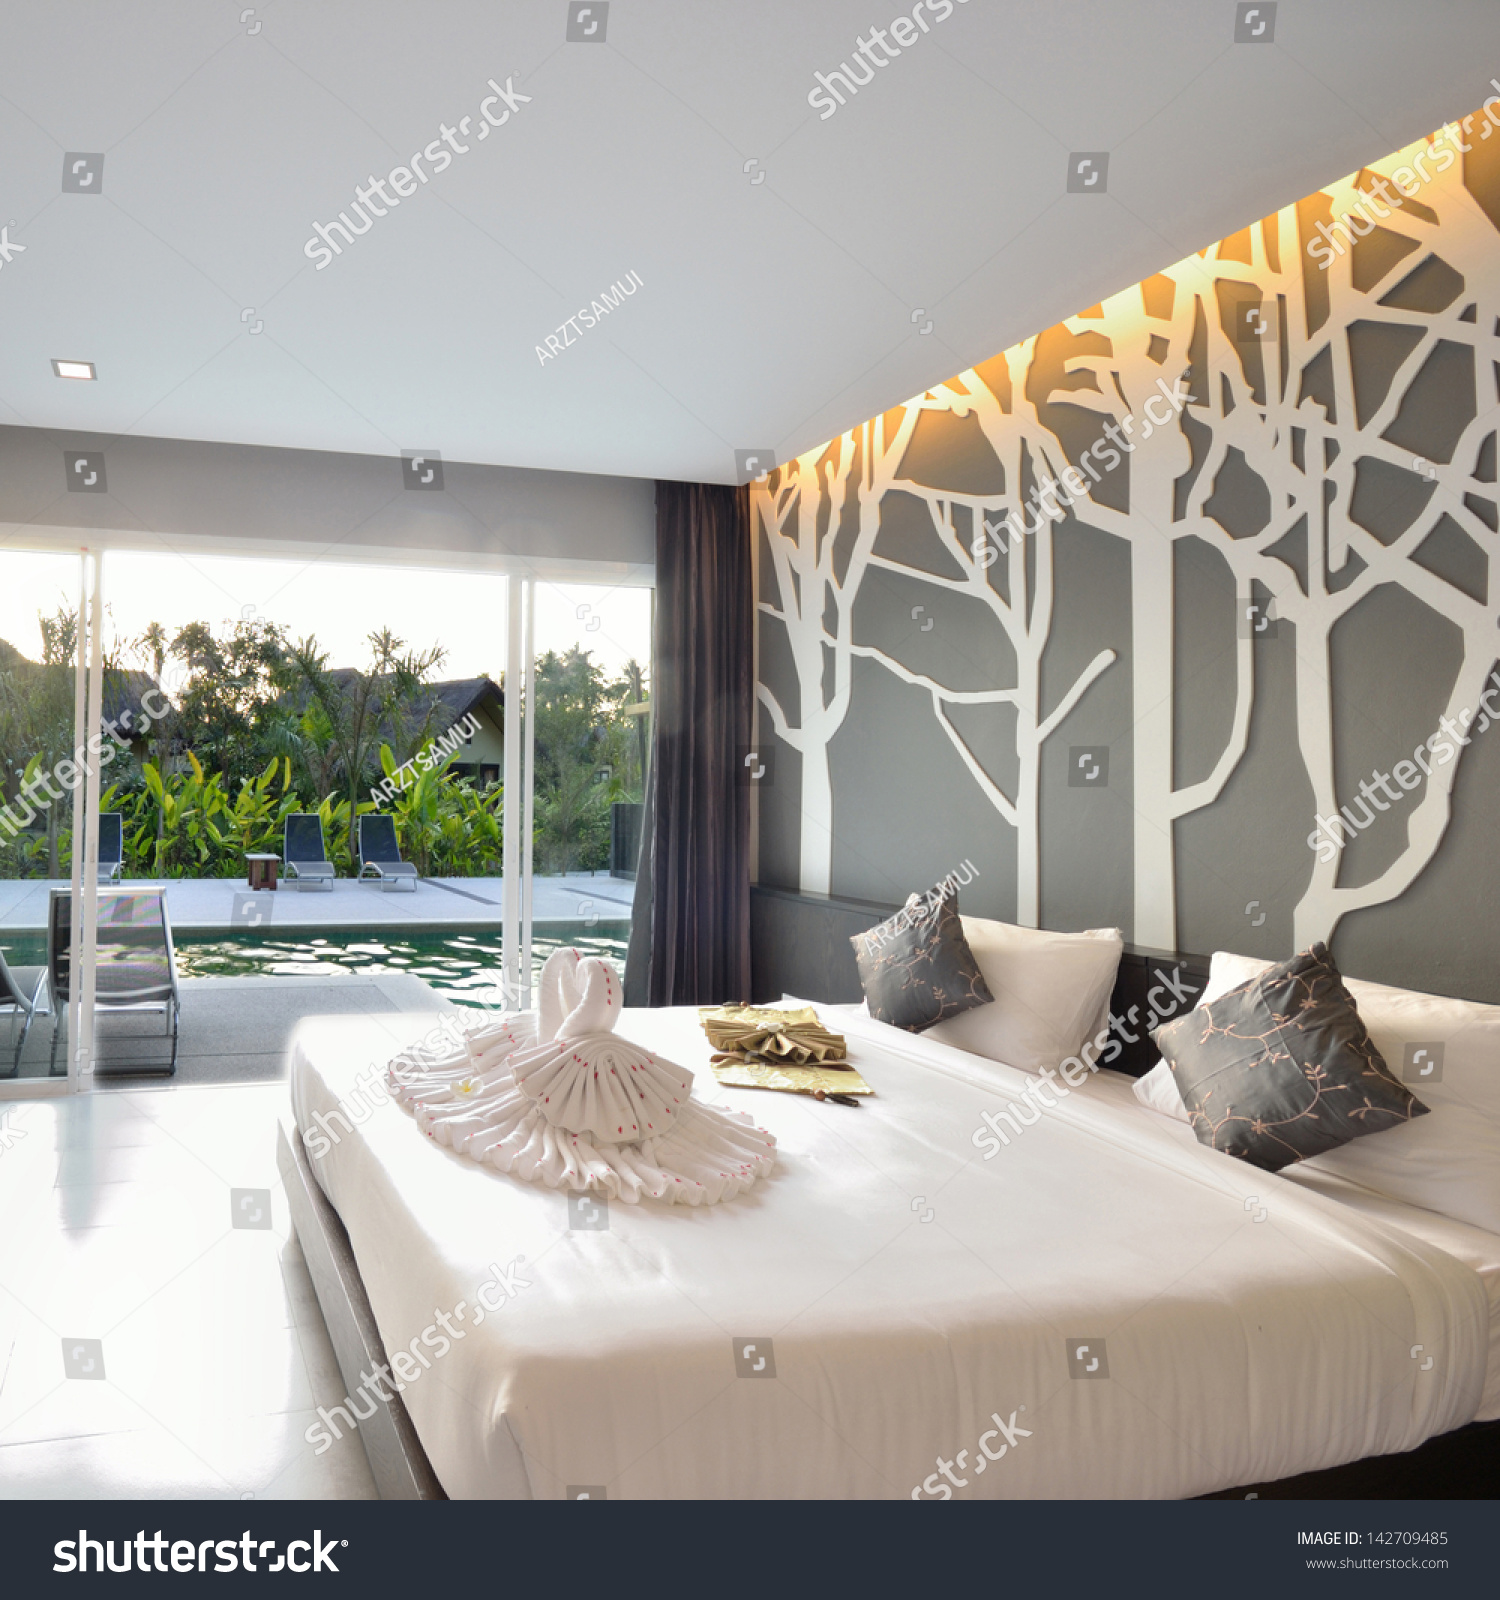 Luxury Bedroom Interior Luxury Bedroom Interior Design Modern Life Stock Photo 142709485